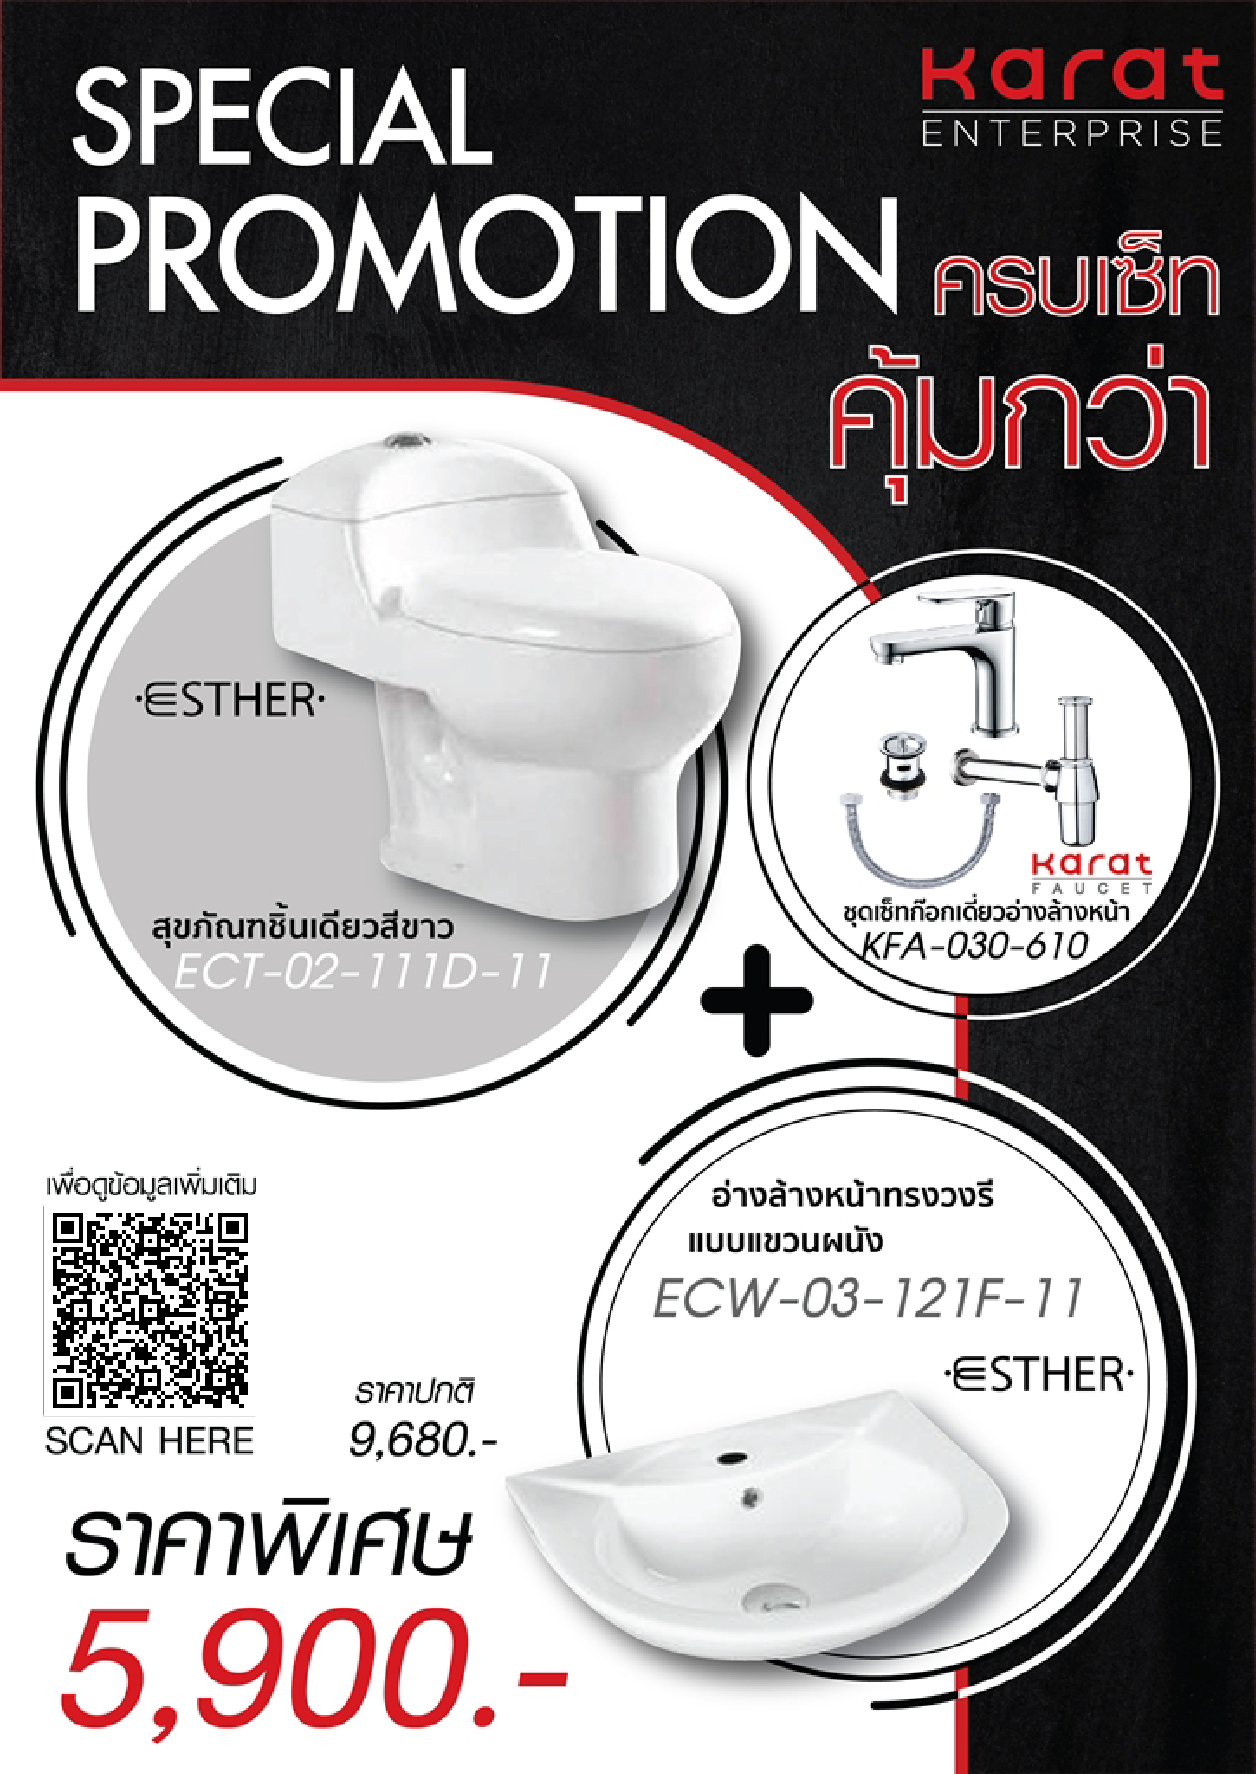 Promotion Esther & Karat Faucet Set 5,900.-